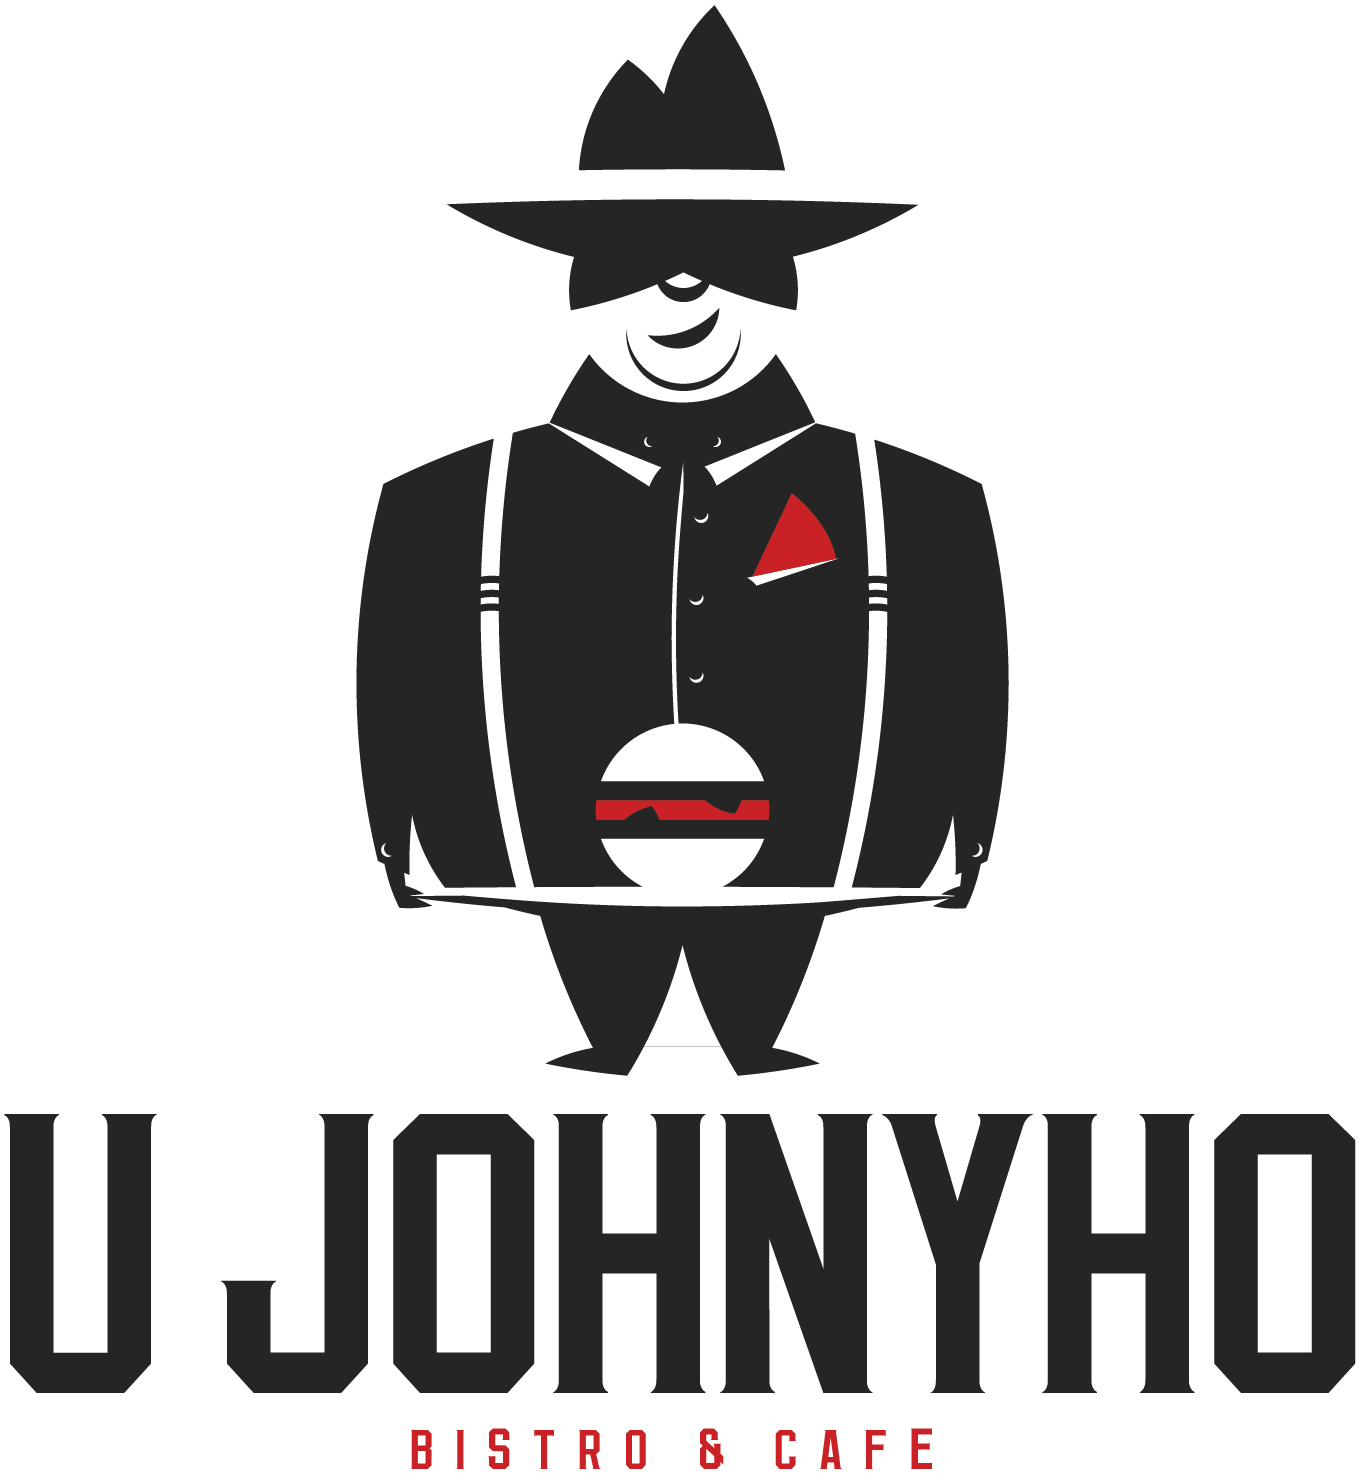 logo U Johnyho